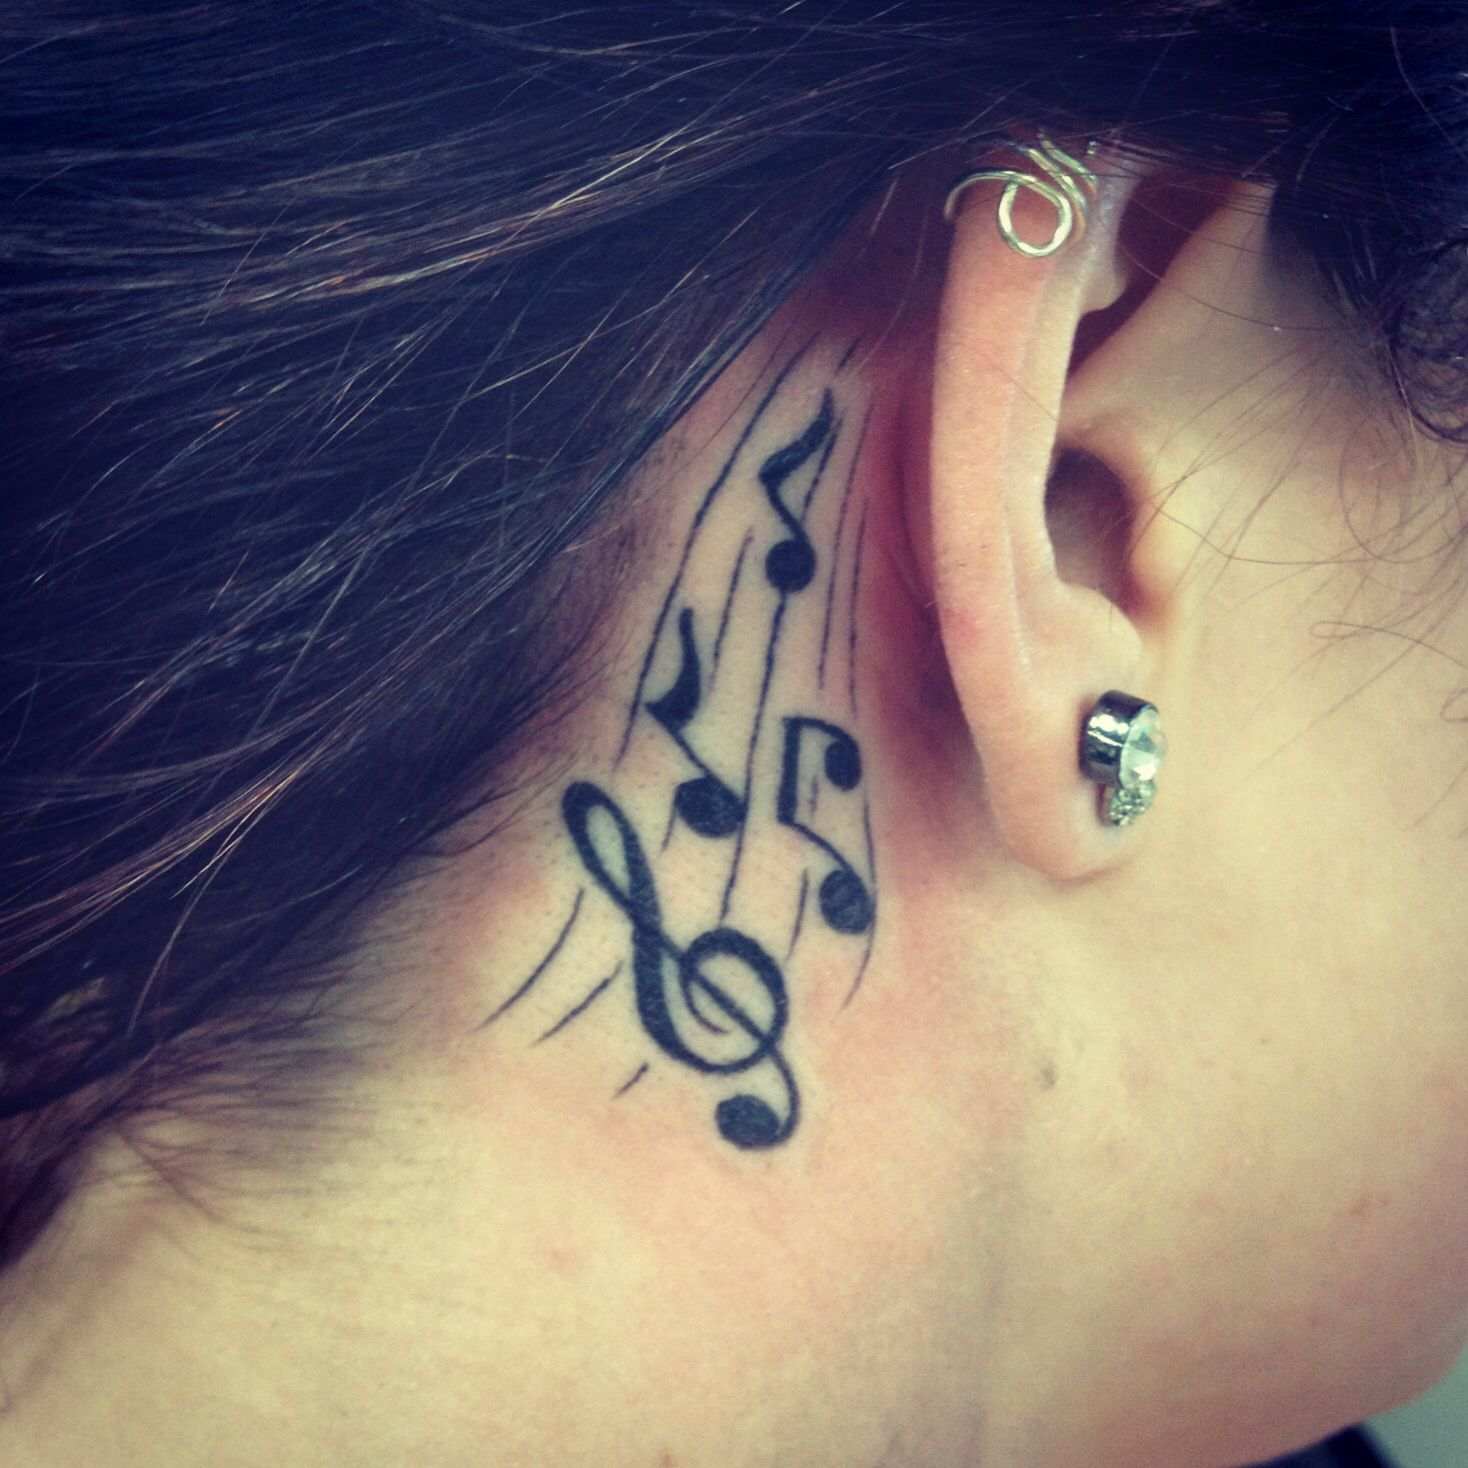 Music Notes Behind The Ear Behind Ear Tattoo Music Tattoos Music Tattoo Designs